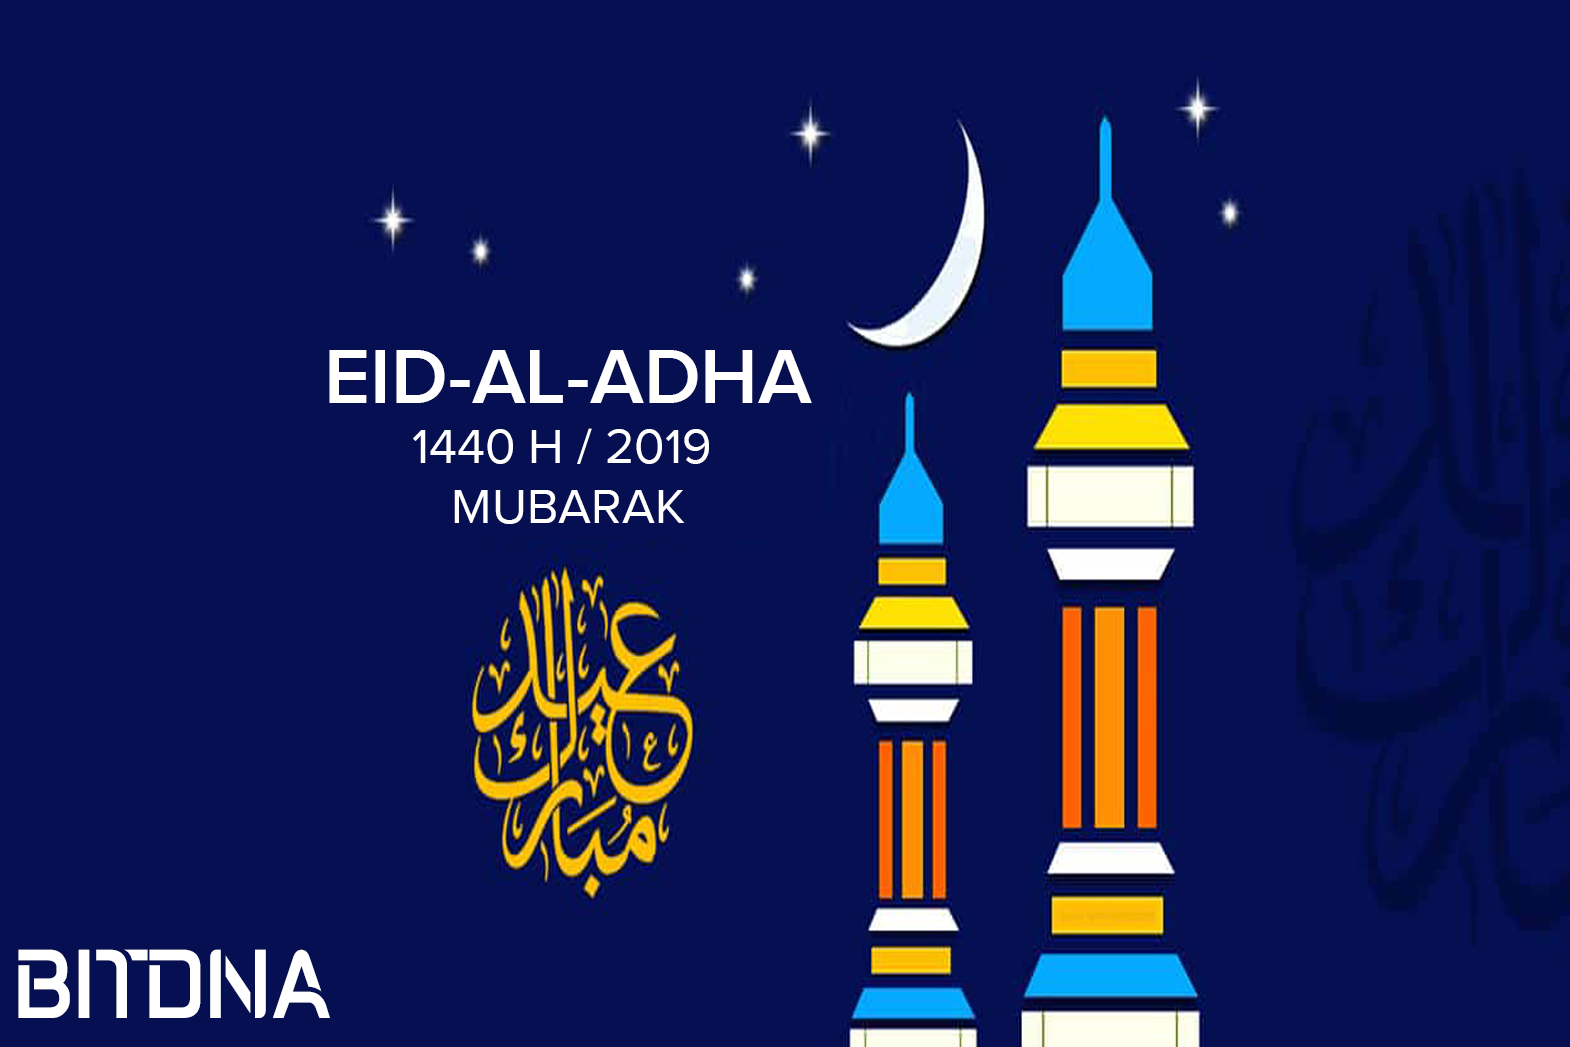 Eid Al Adha greetings from BITDNA